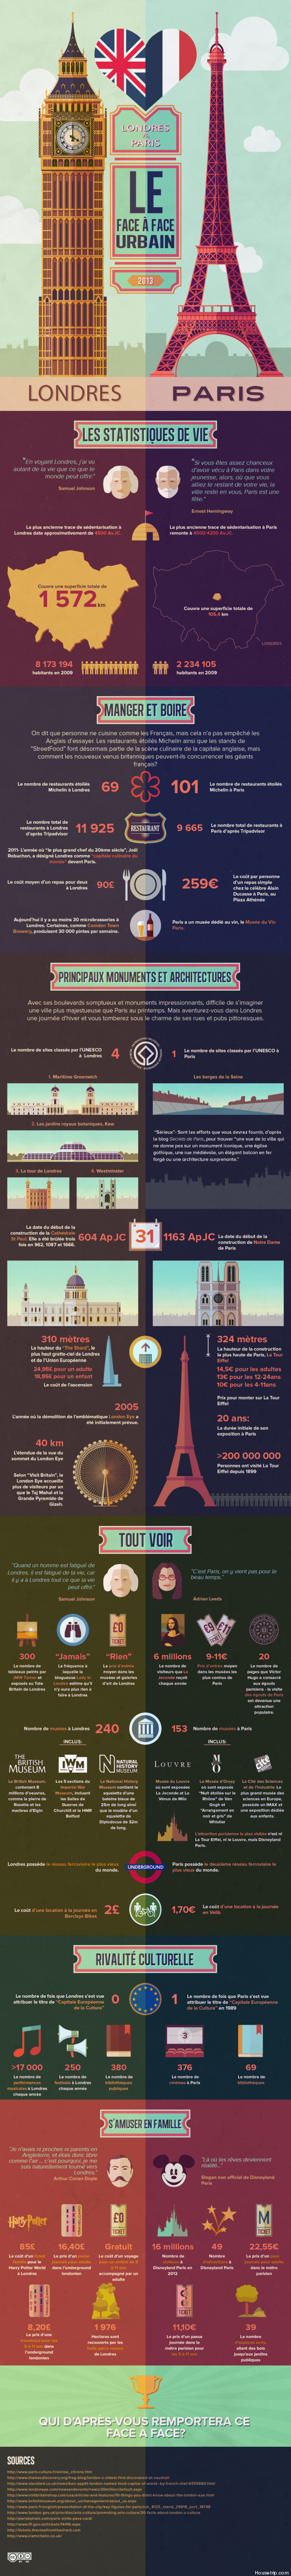 o-INFOGRAPHIE-LONDRES-PARIS-570